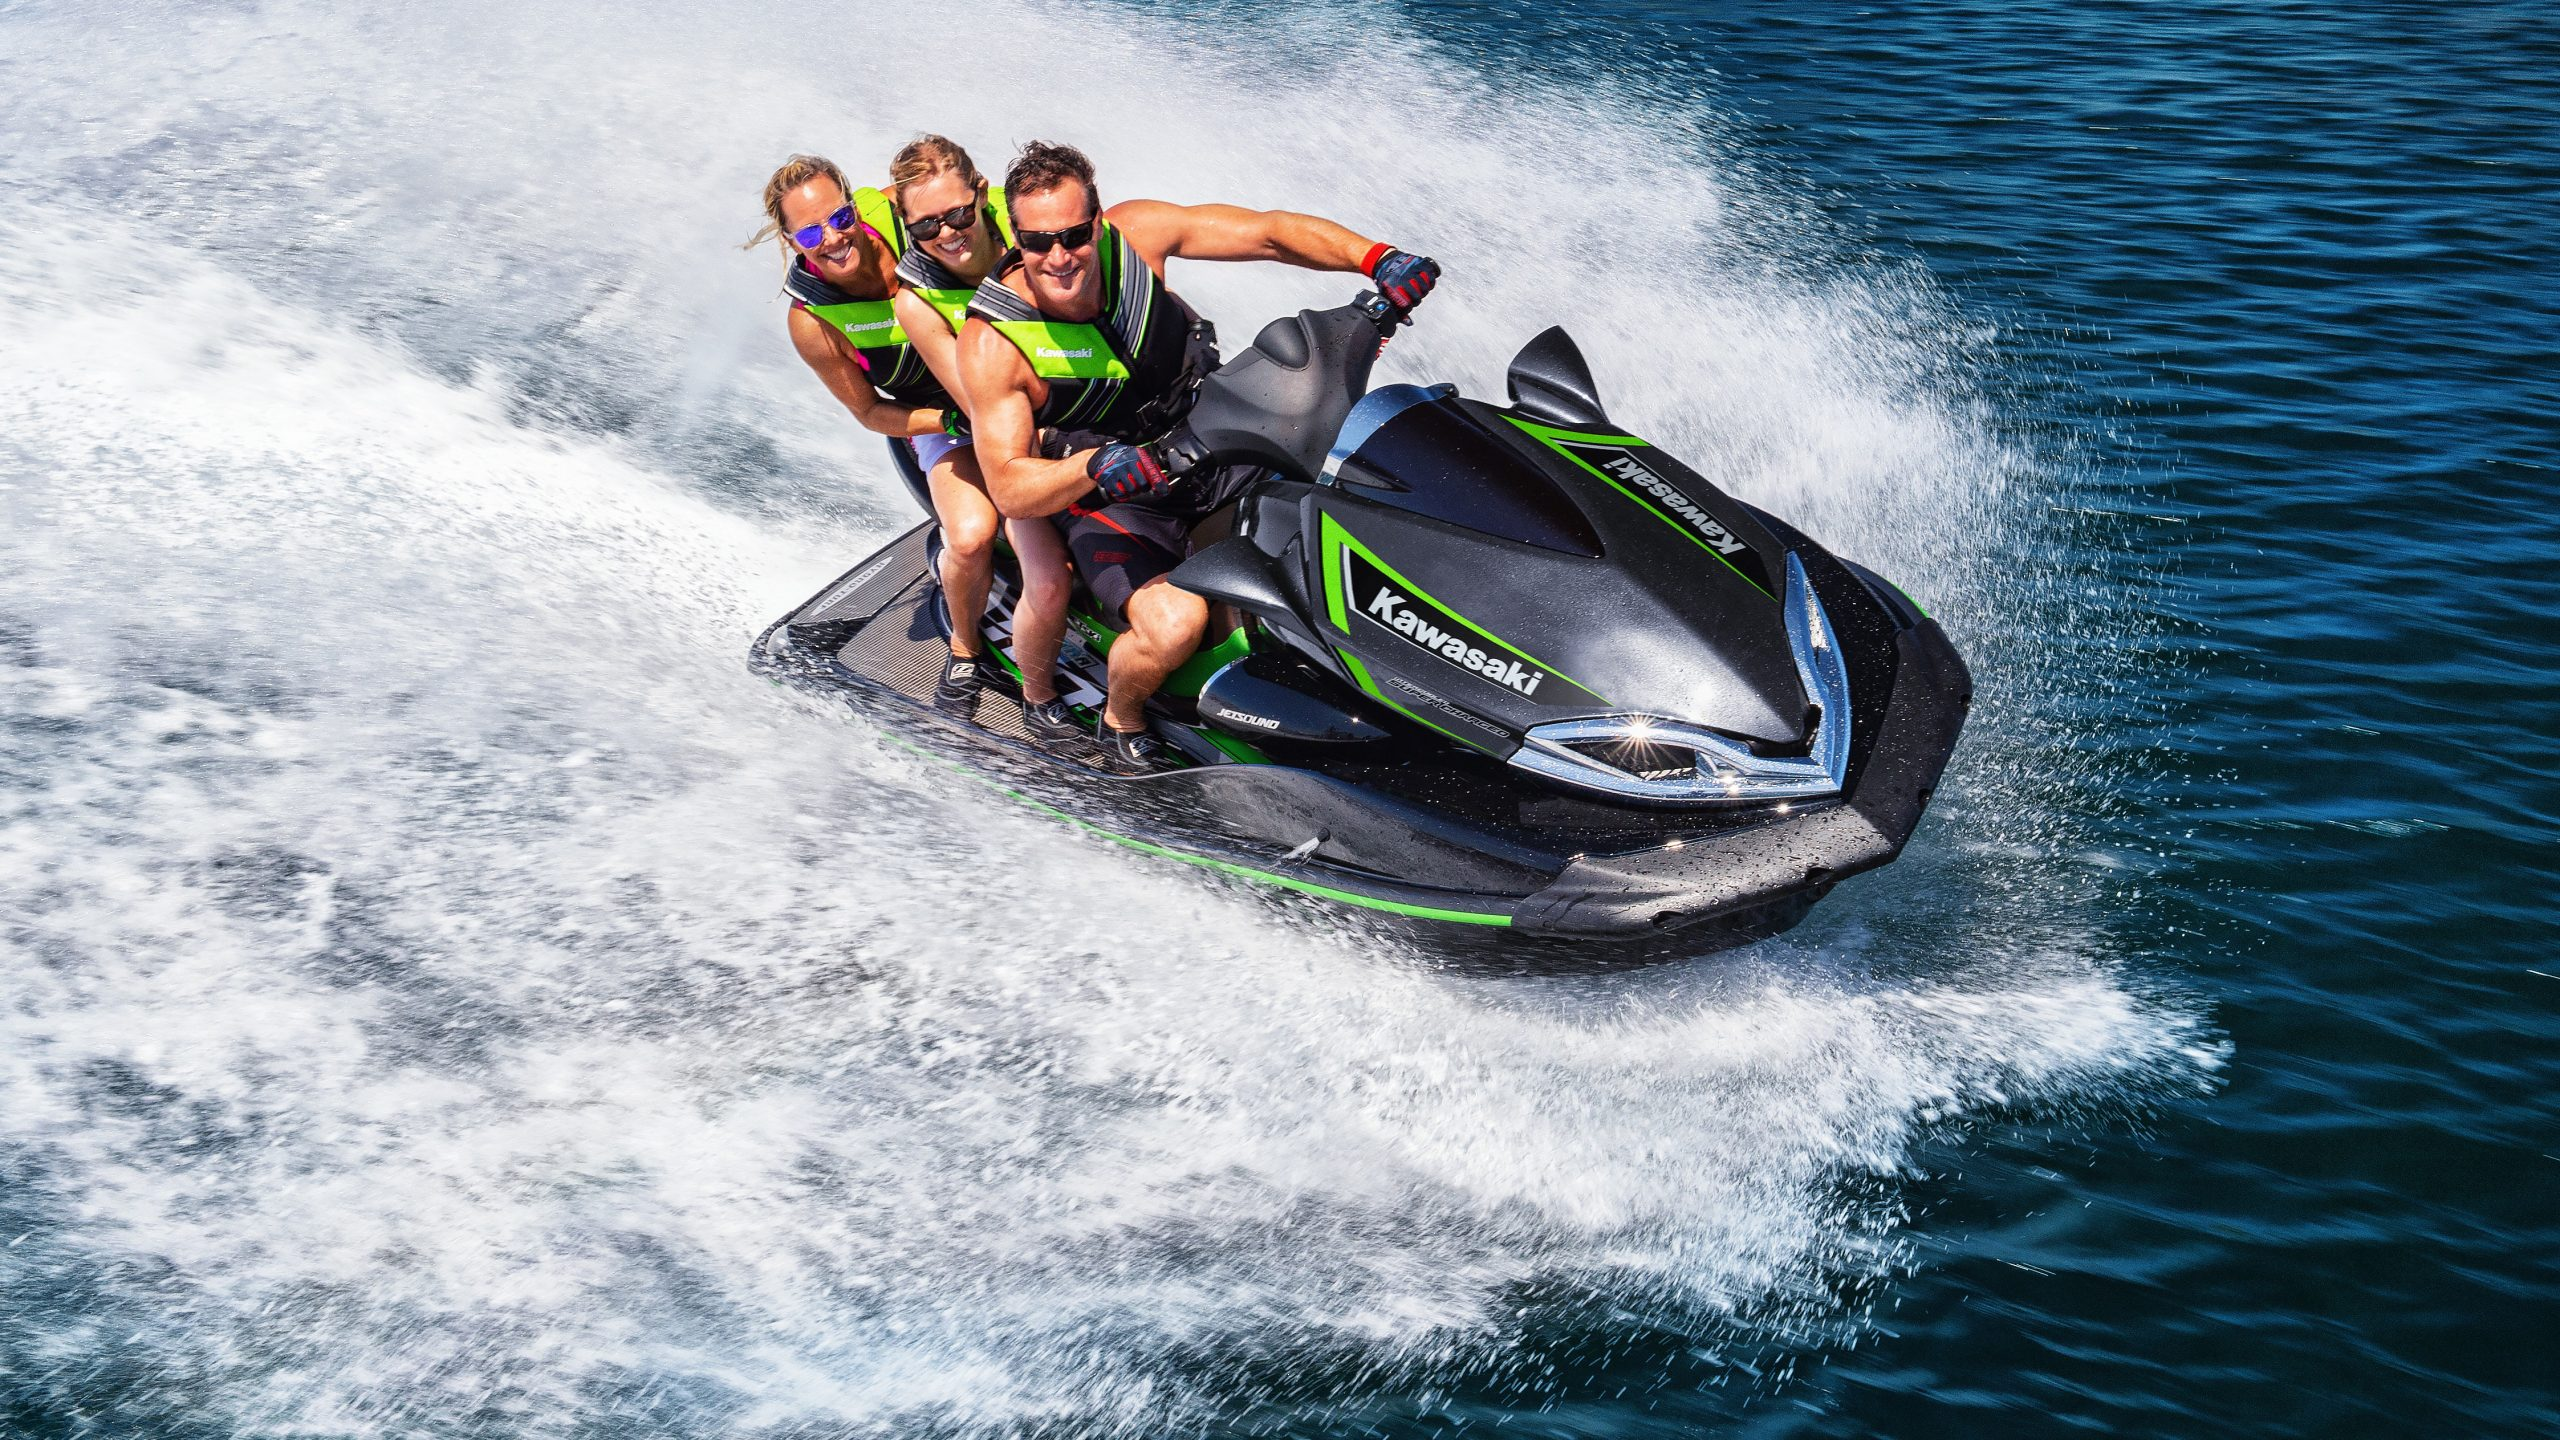 Insurance for Jet Skis and personal watercraft: What are your options?